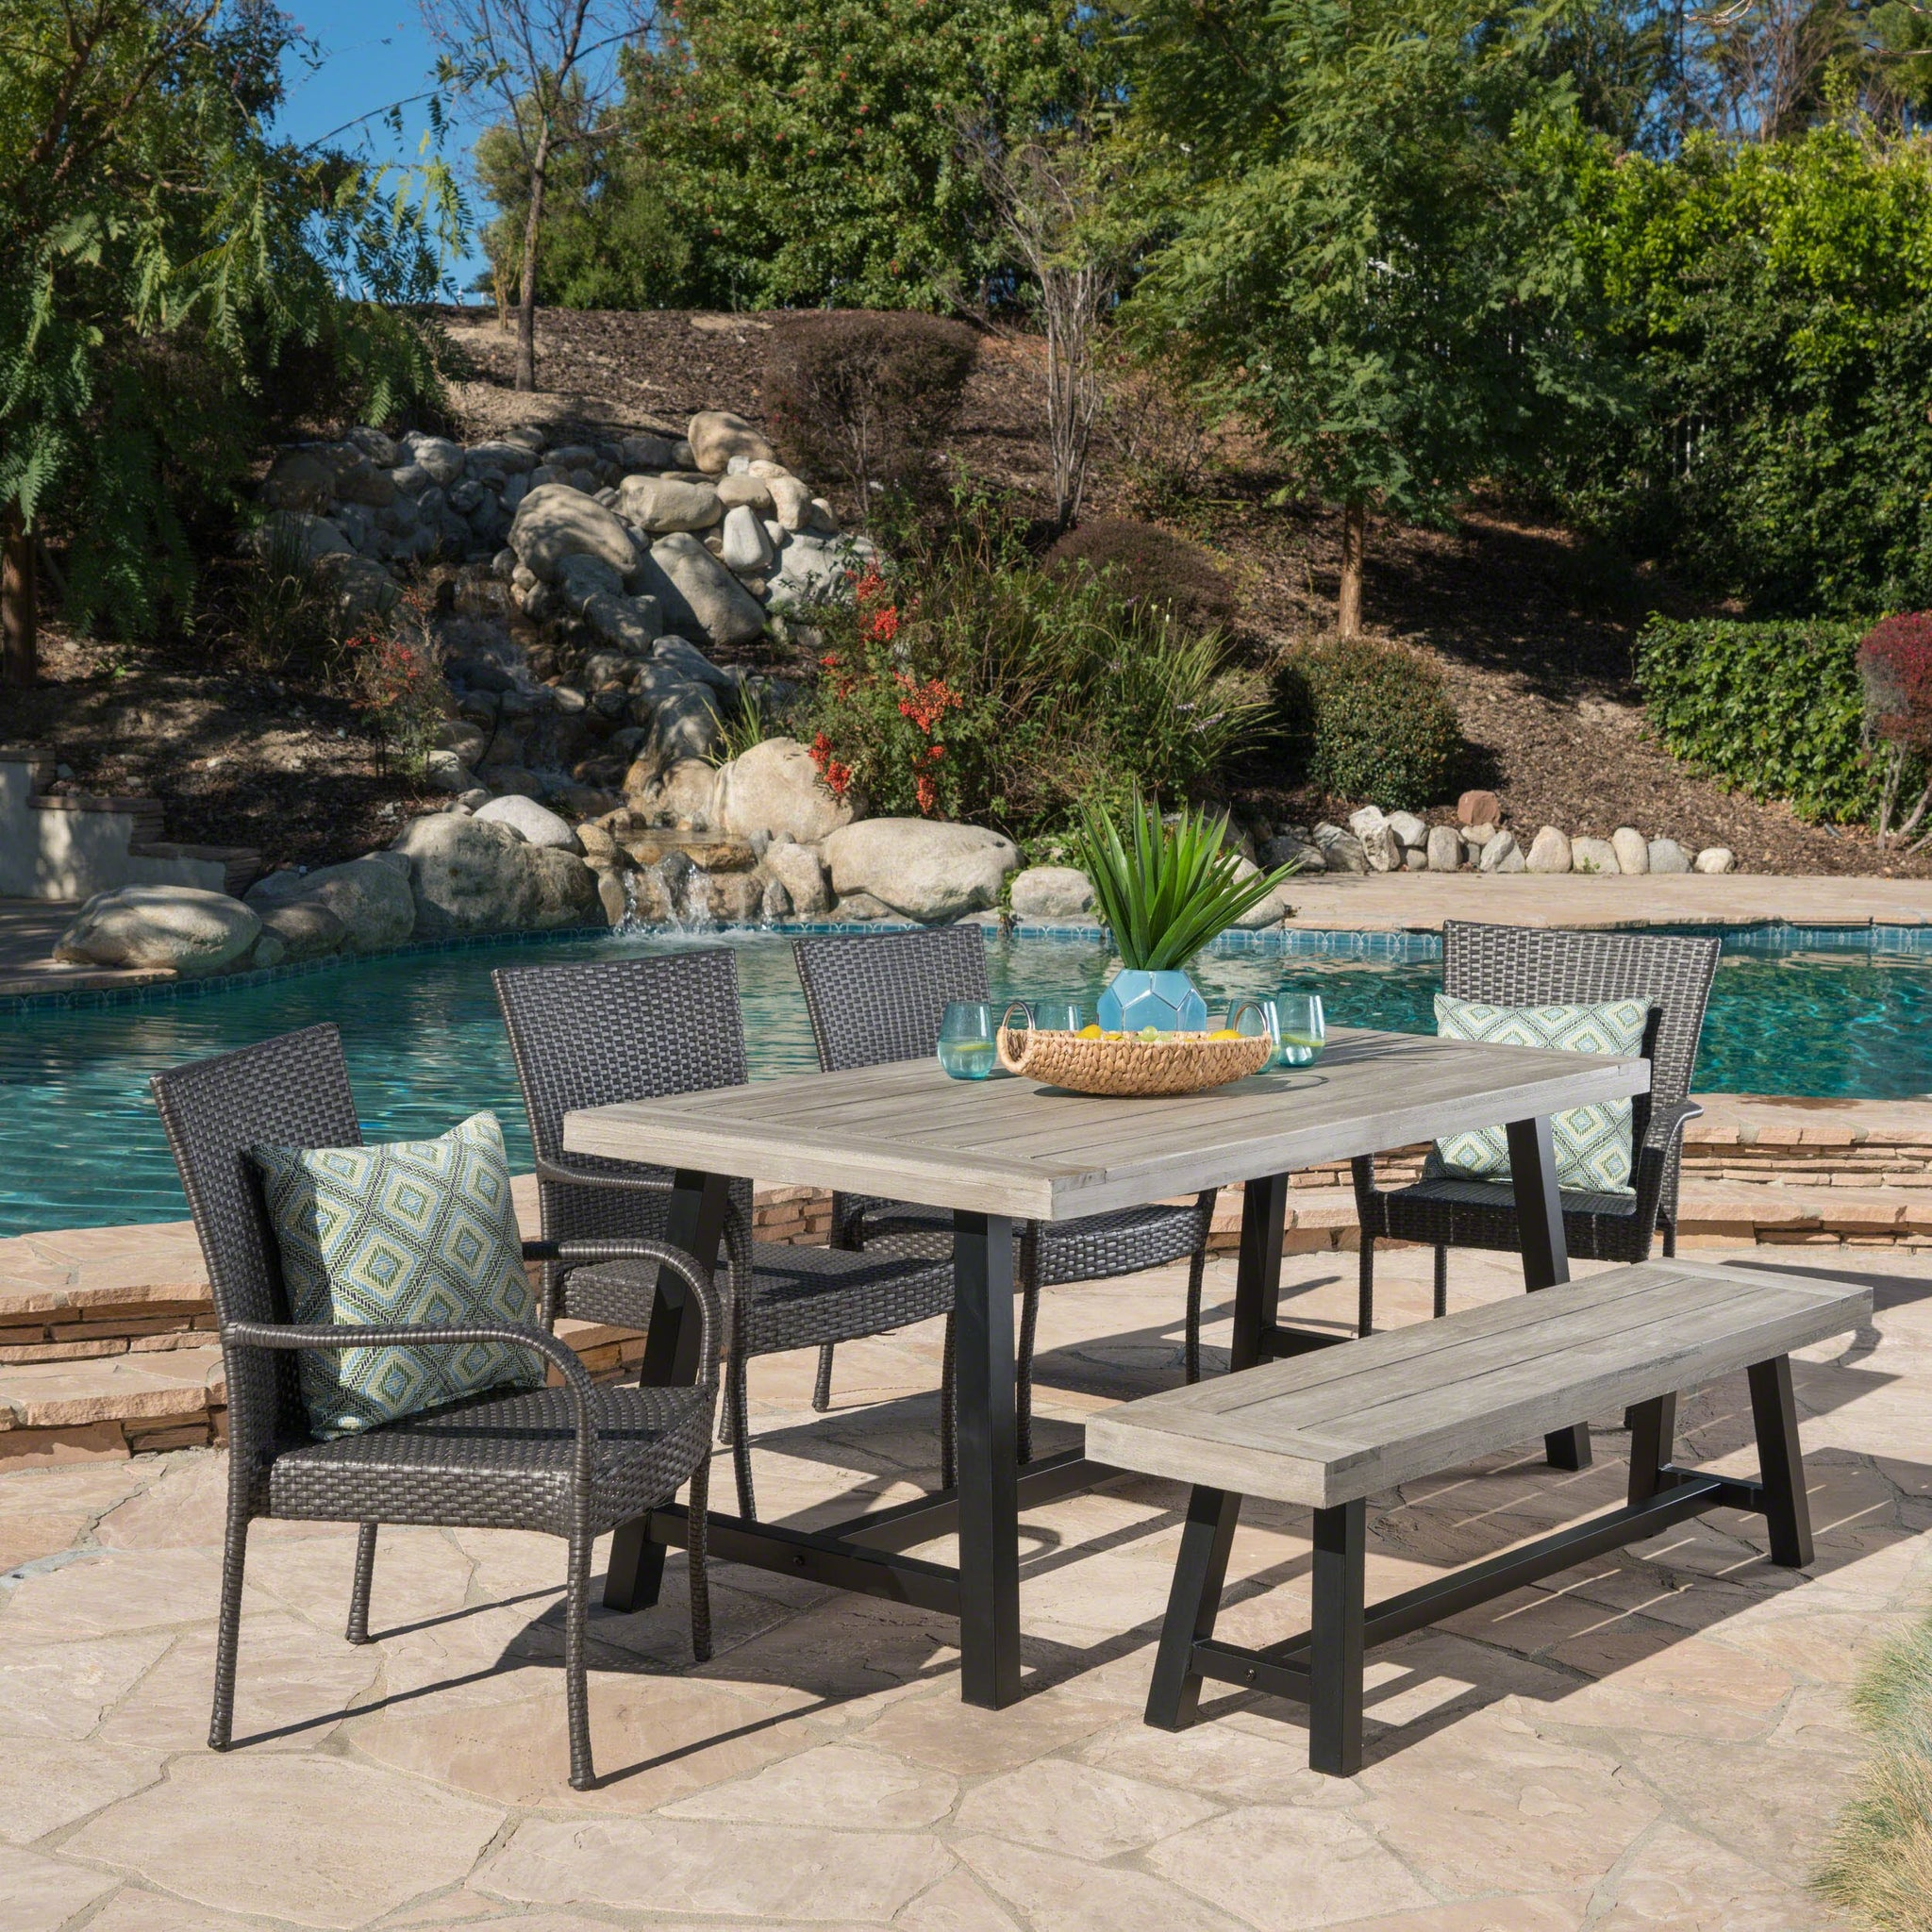 Conrad Outdoor 6 Piece Stacking Wicker Dining Set With Sandblast Finish Acacia Wood Table And Bench